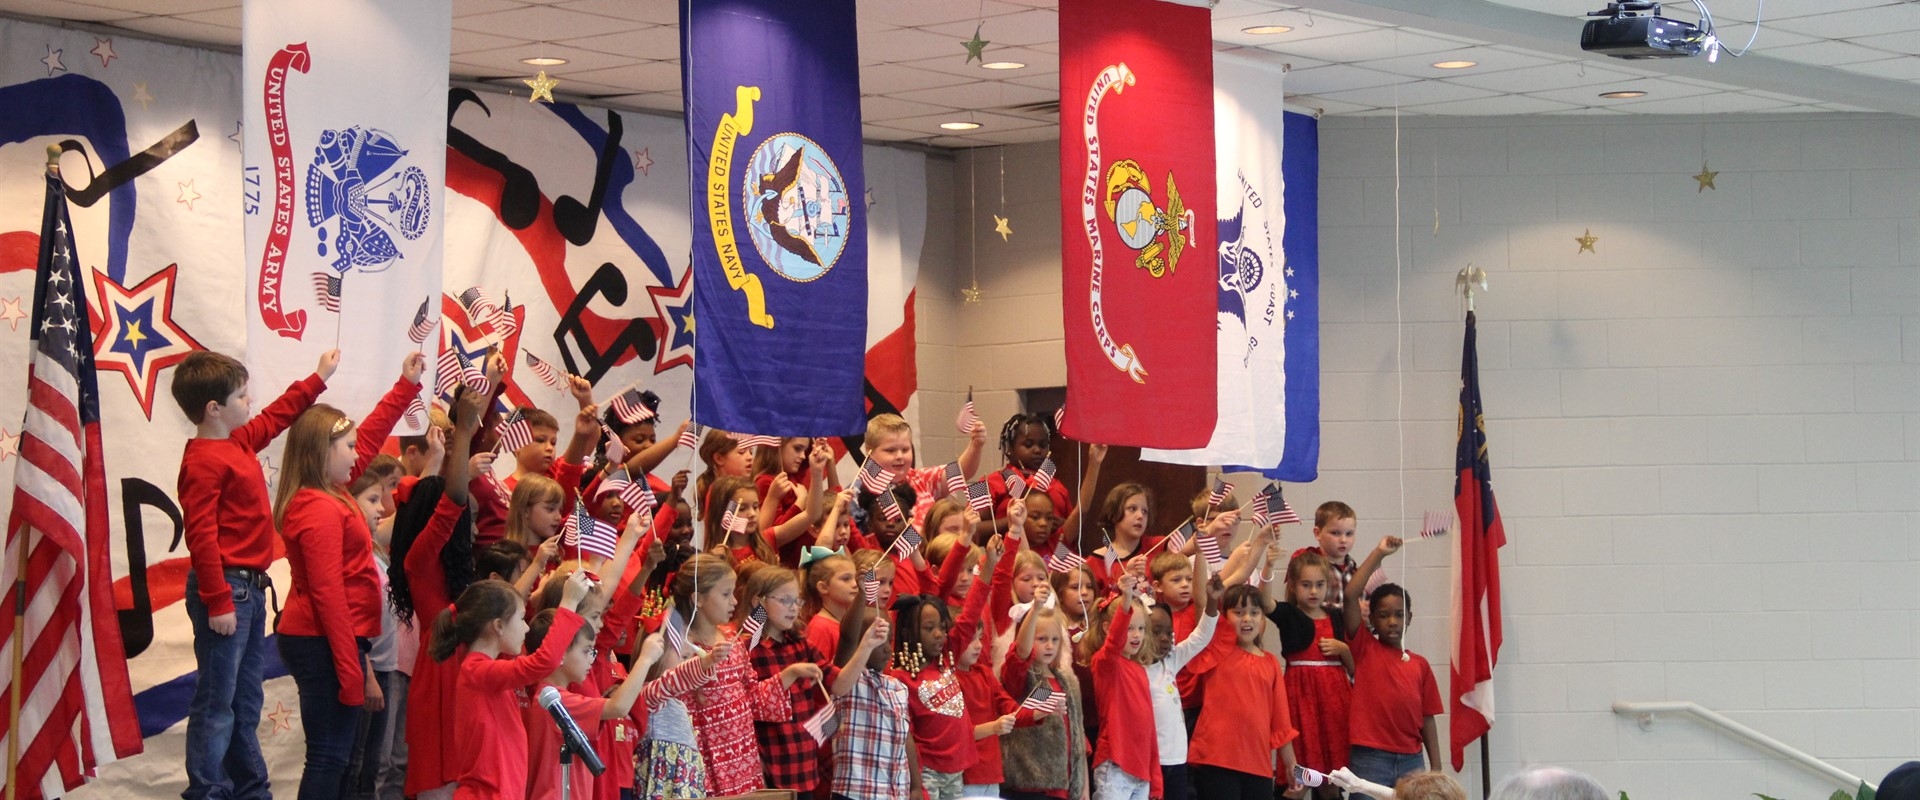 WCPS Veteran's Day Celebration 2019